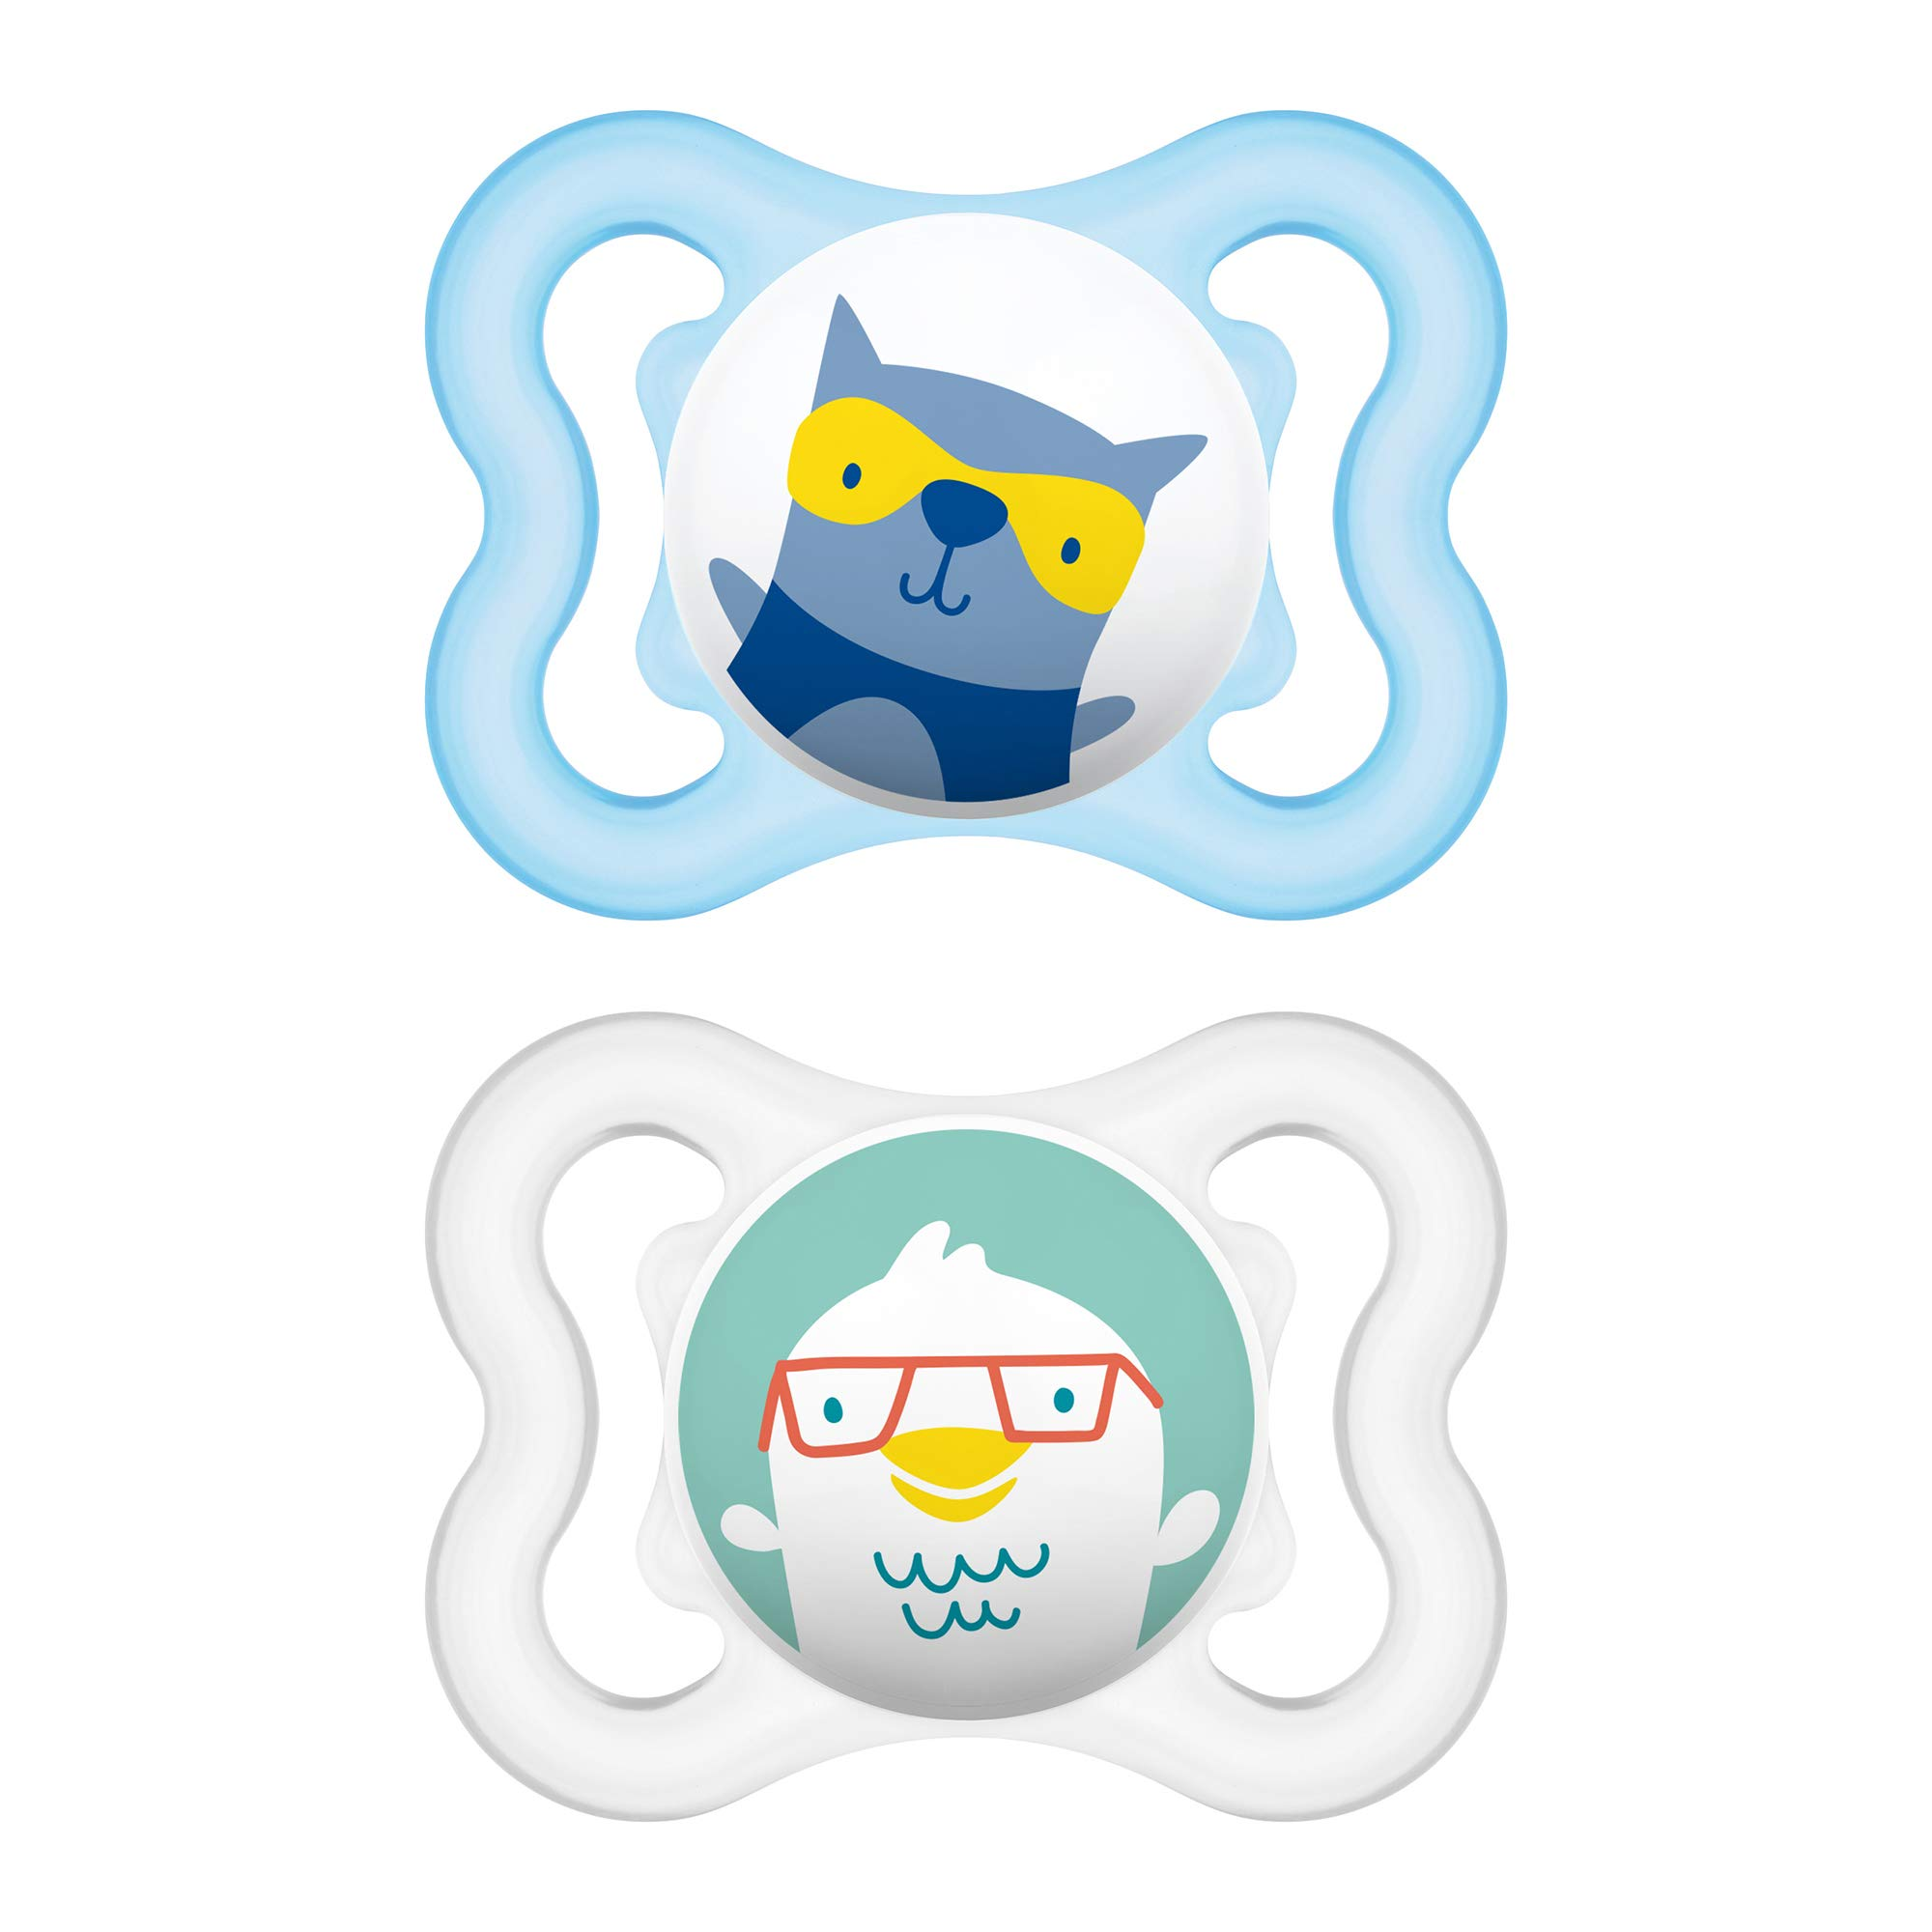 MAM Mini Air Pacifiers (2 pack), MAM Sensitive Skin Pacifier 0-6 Months, Best Pacifier for Breastfed Babies, Baby Boy Pacifiers